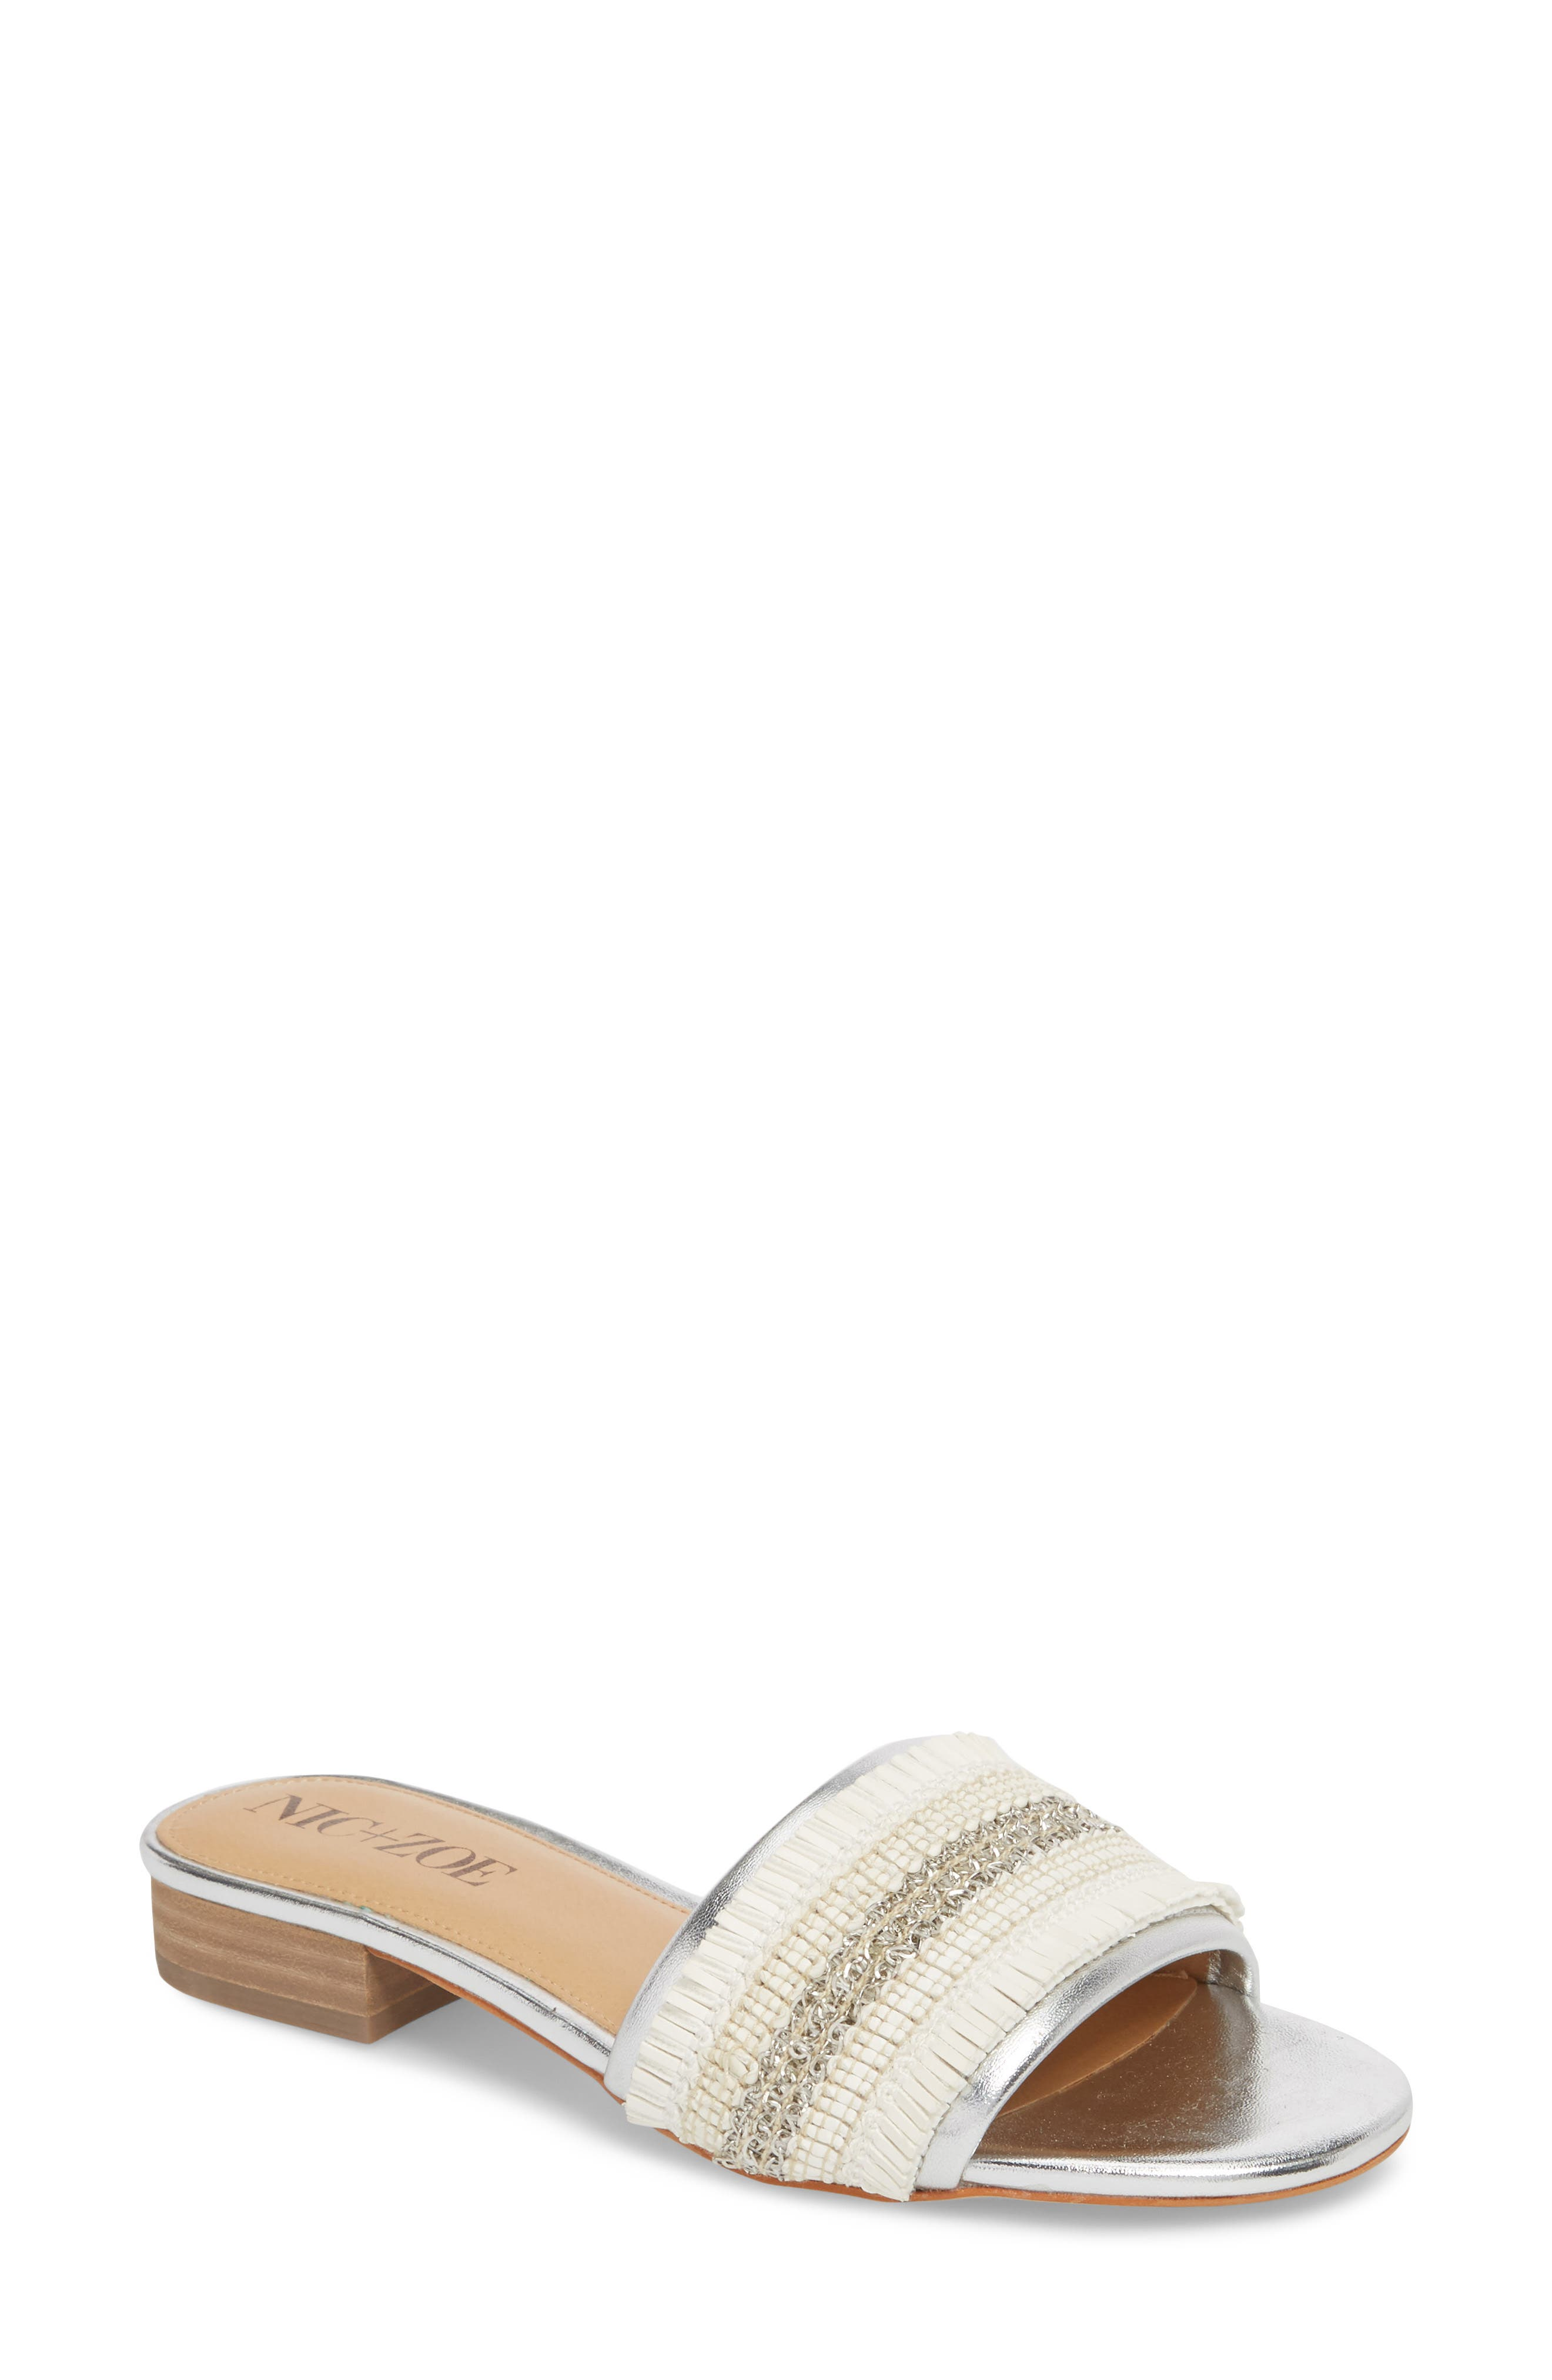 NIC + ZOE Sandy Slide Sandal (Women)